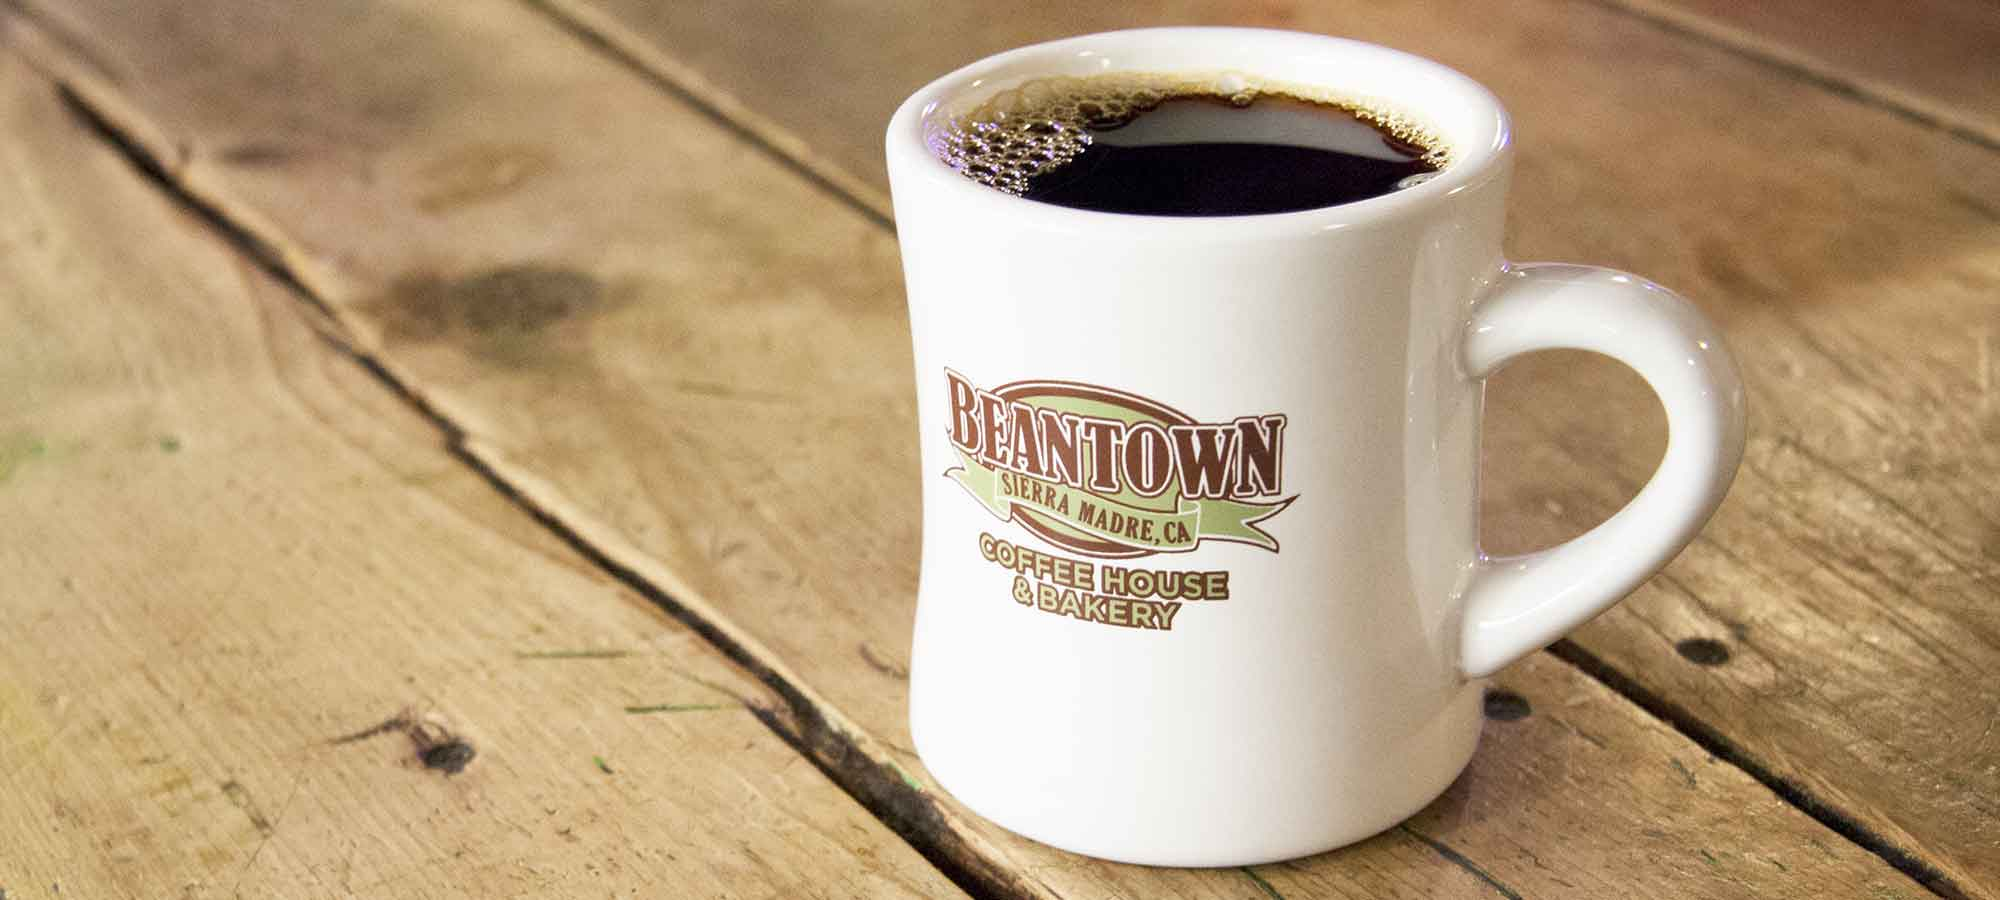 Bean Town ceramic mug filled with coffee on a wooden table